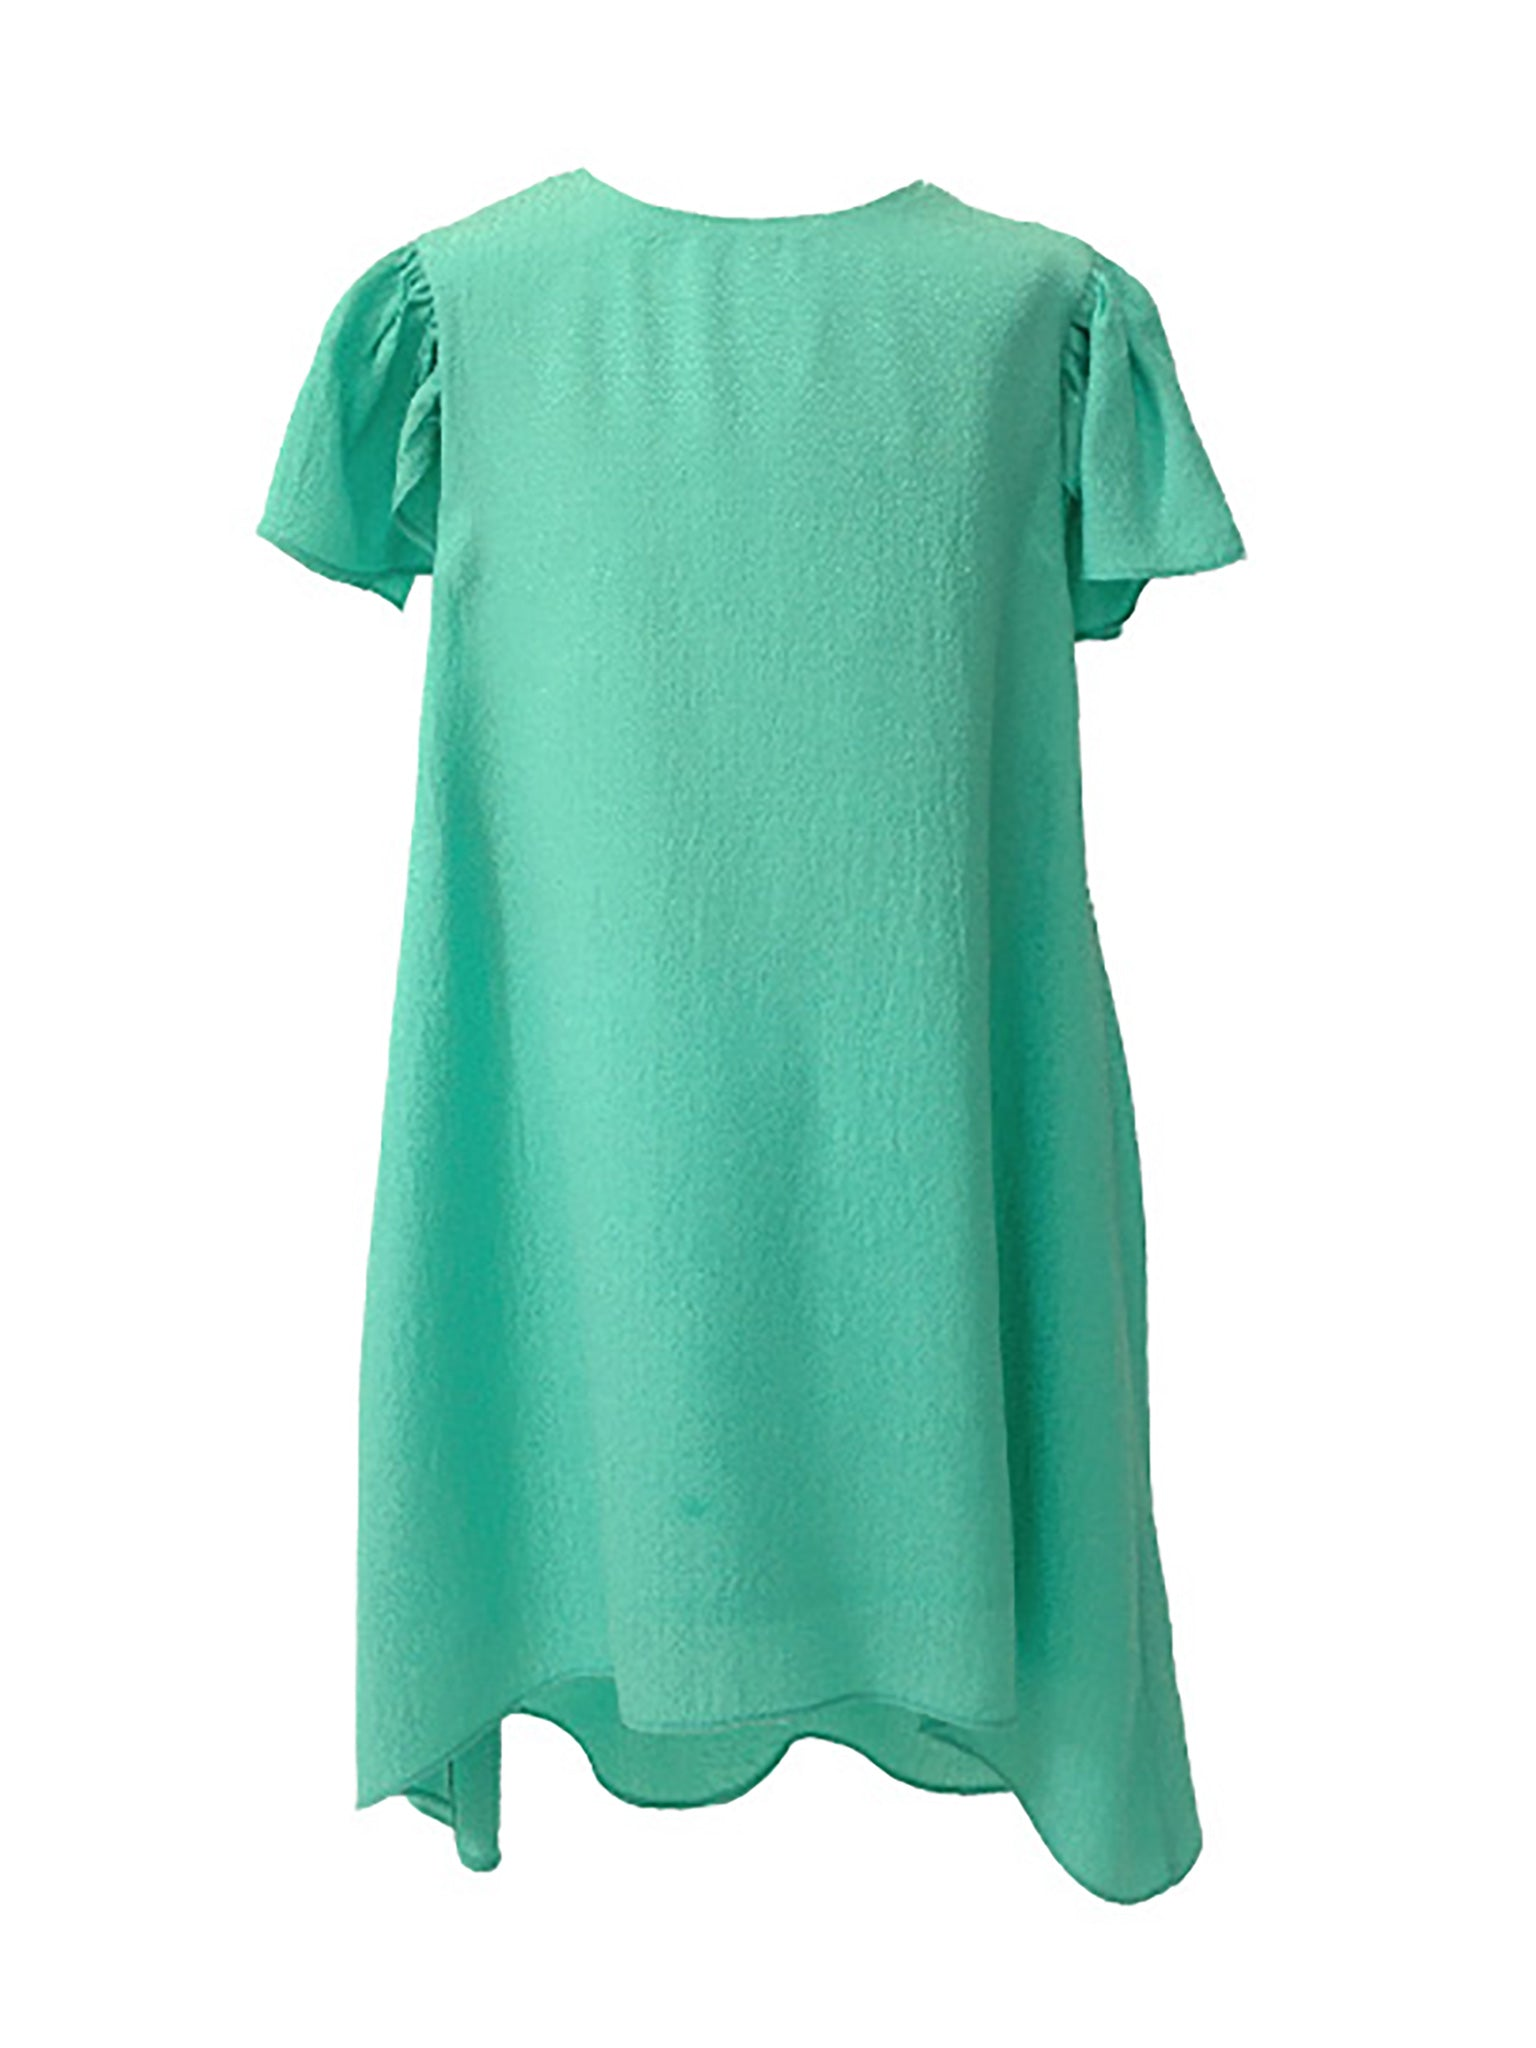 Stylish Mint Designer Dress